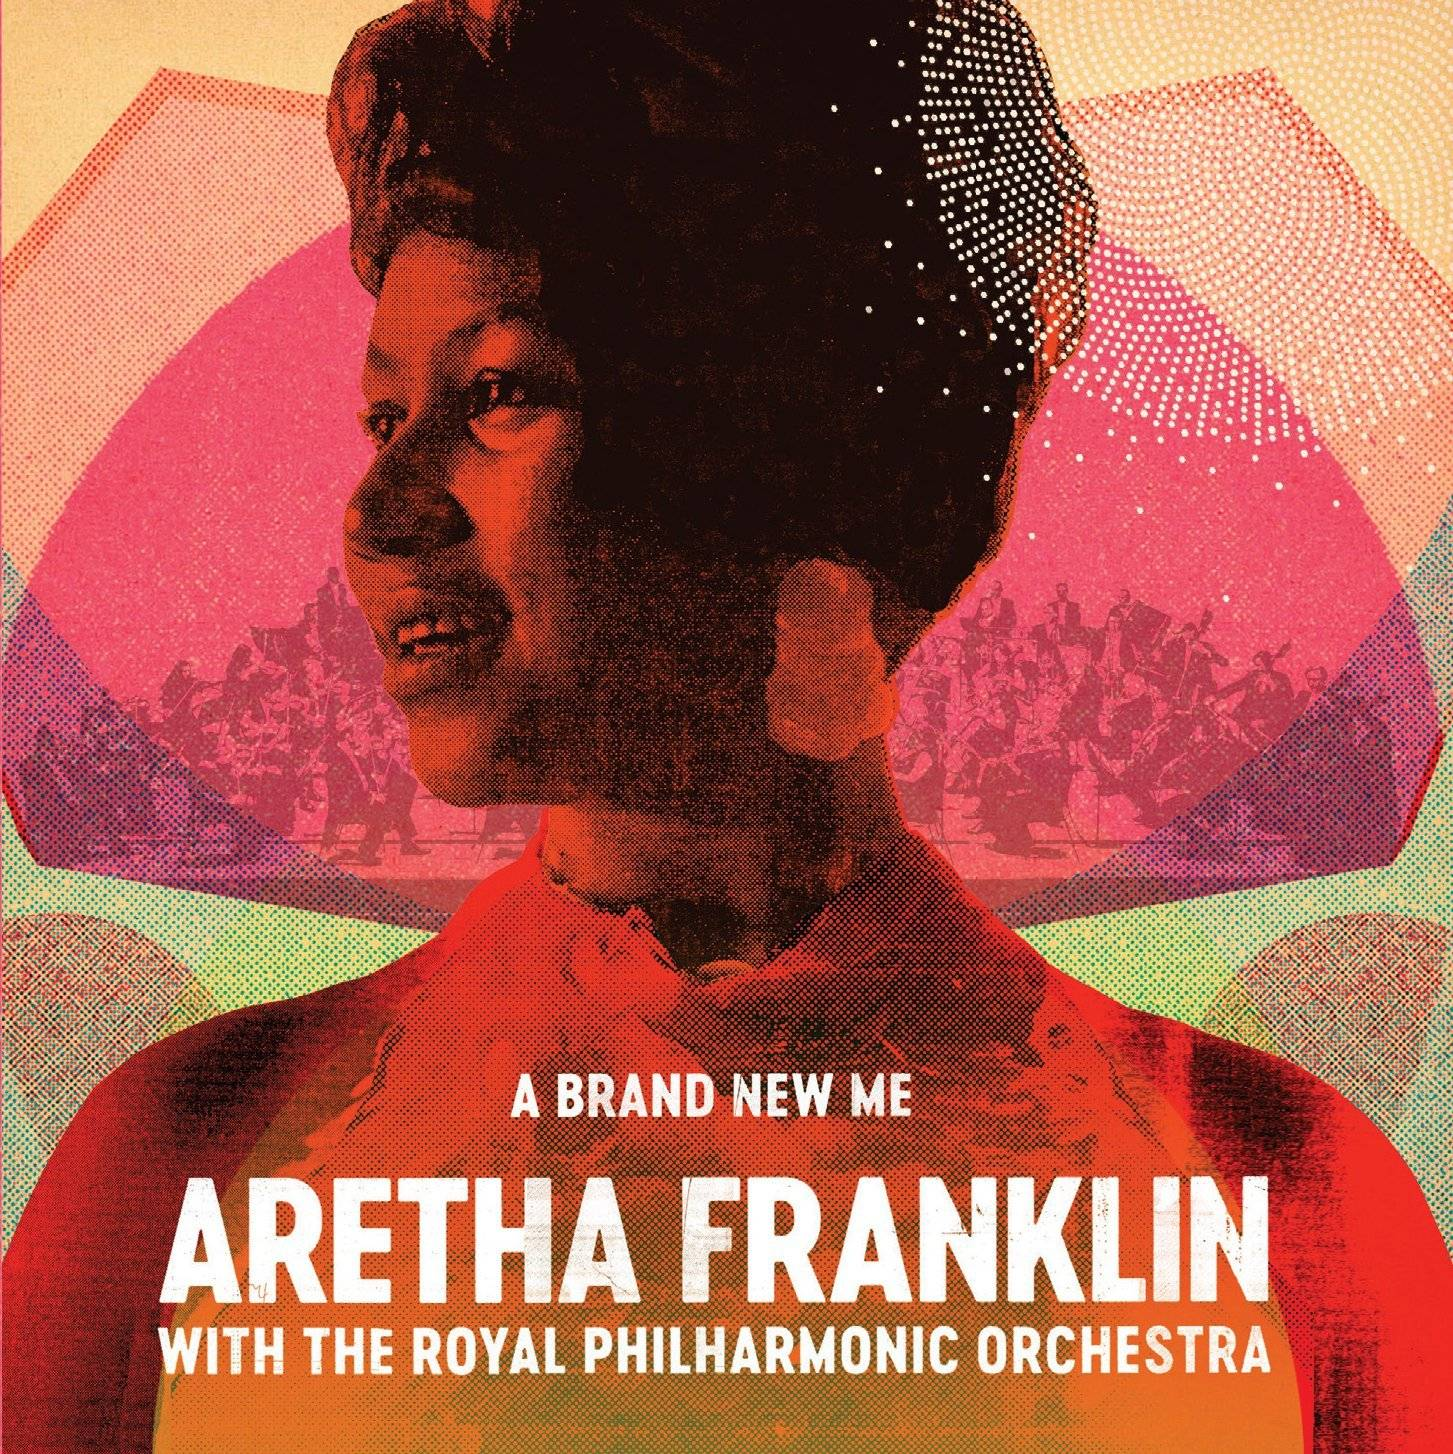 Aretha Franklin - A Brand New Me: Aretha Franklin With The Royal Philharmonic Orchestra (2017)